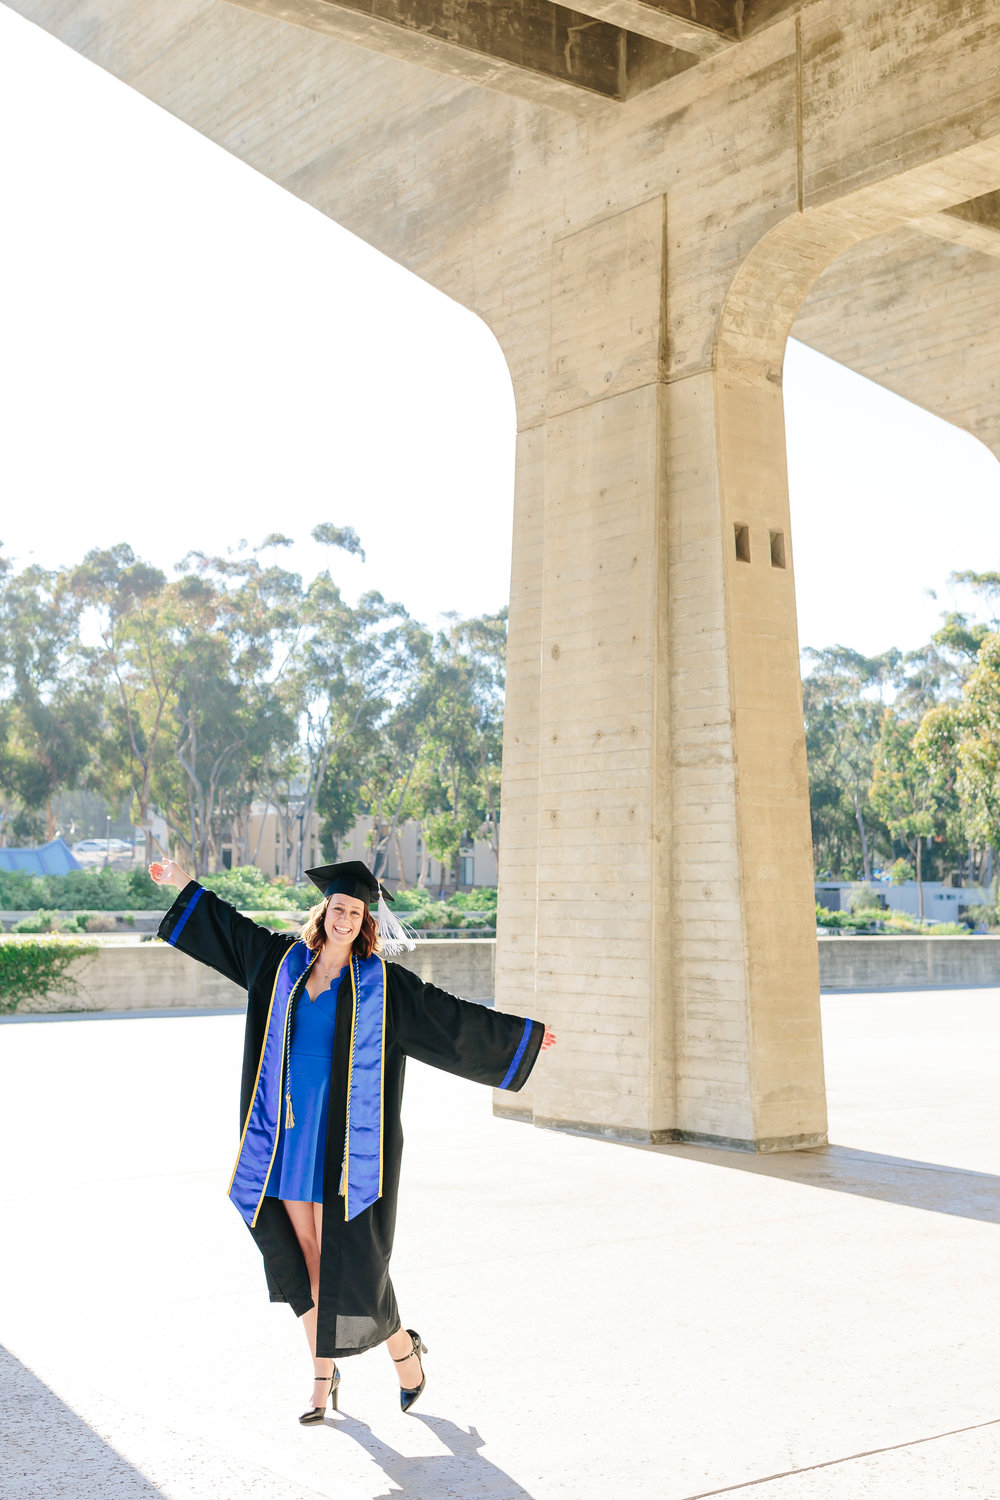 Marisa_UCSD_Graduation_Session_023.jpg